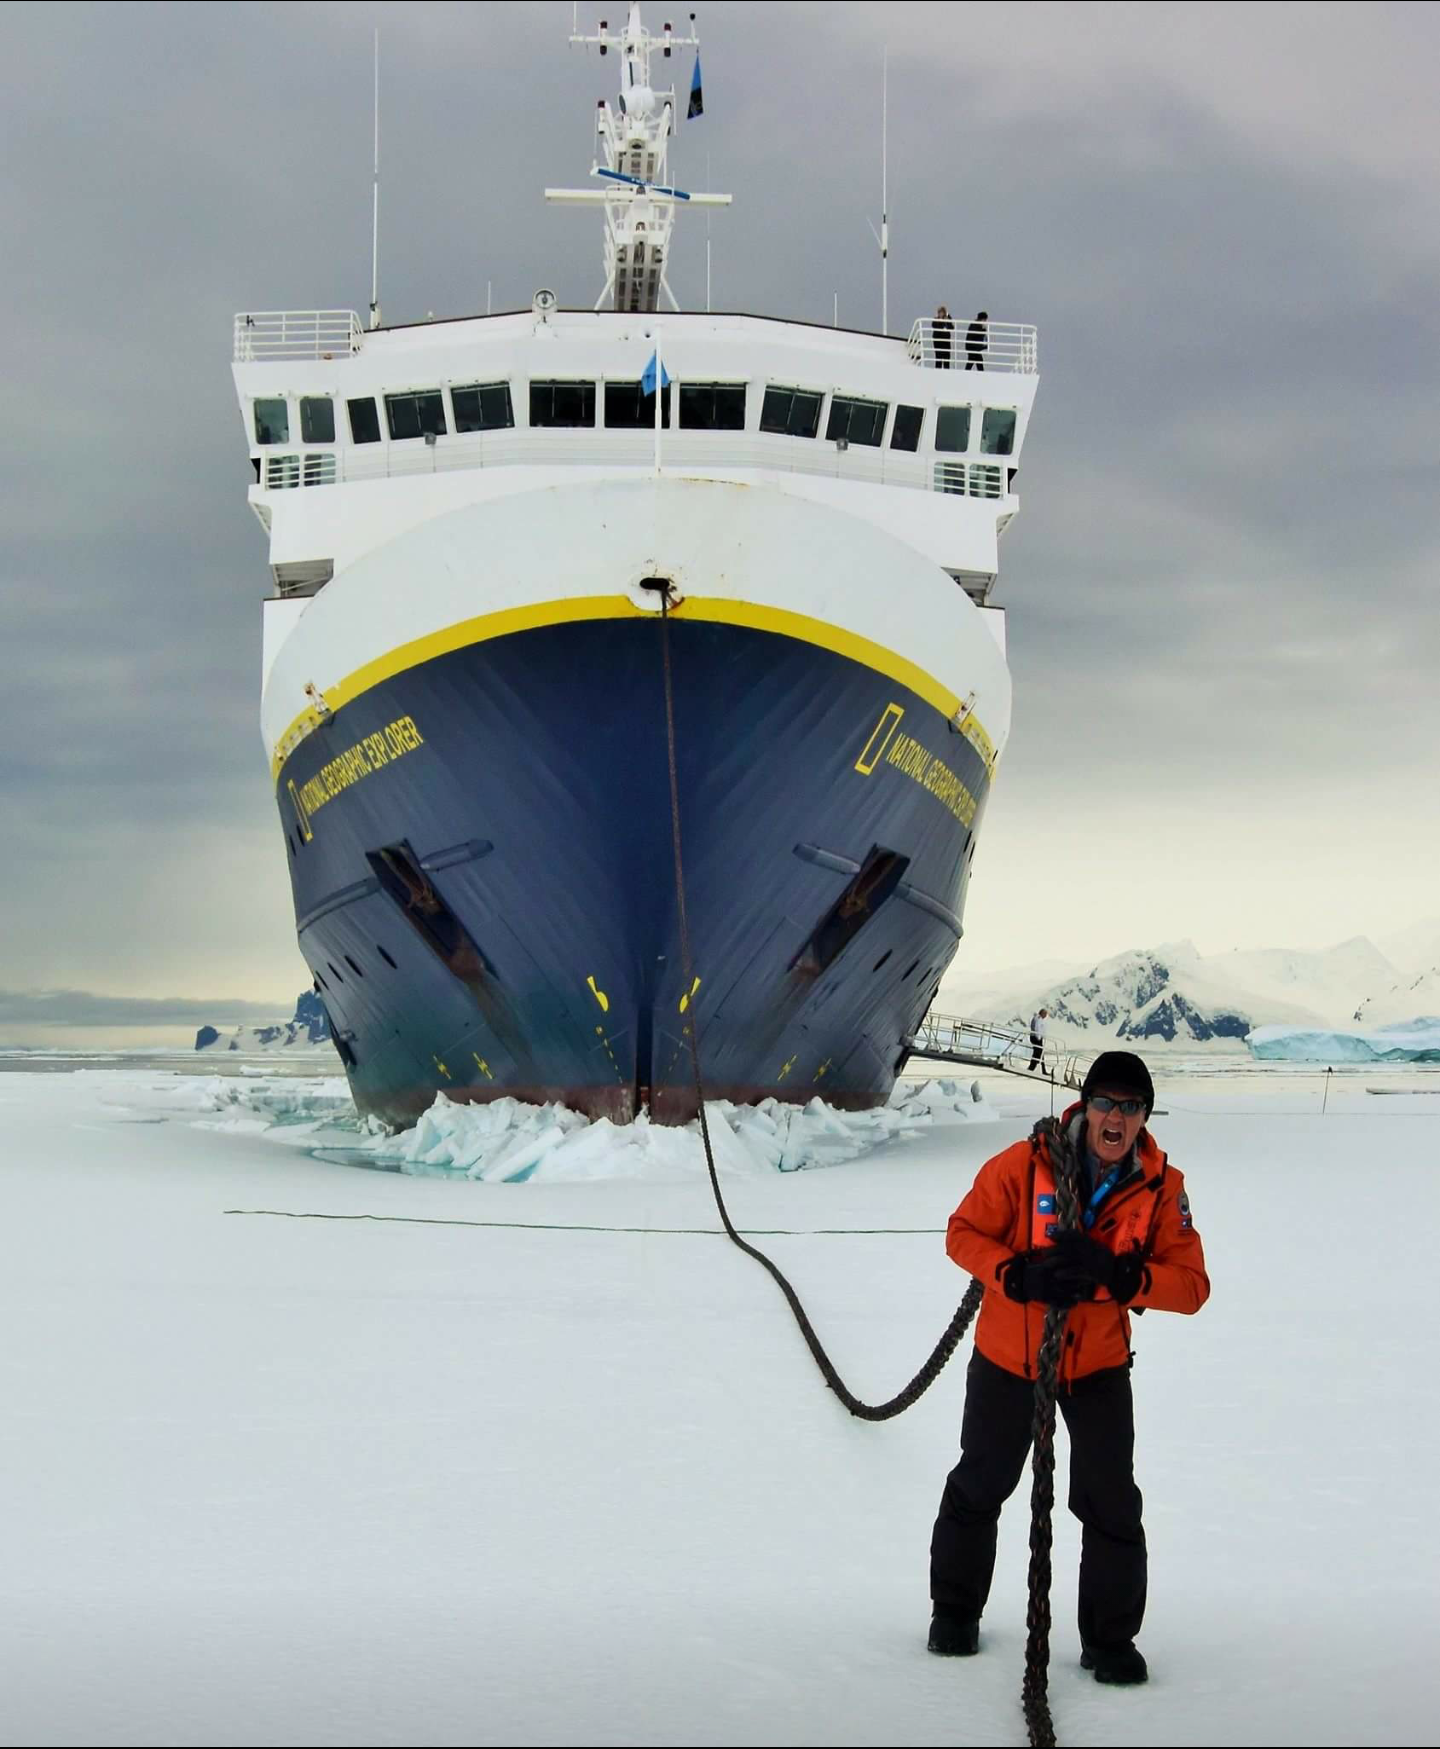 70 yr old Grandpa, helping pull the National Geographic Explorer through the ice in Antarctica